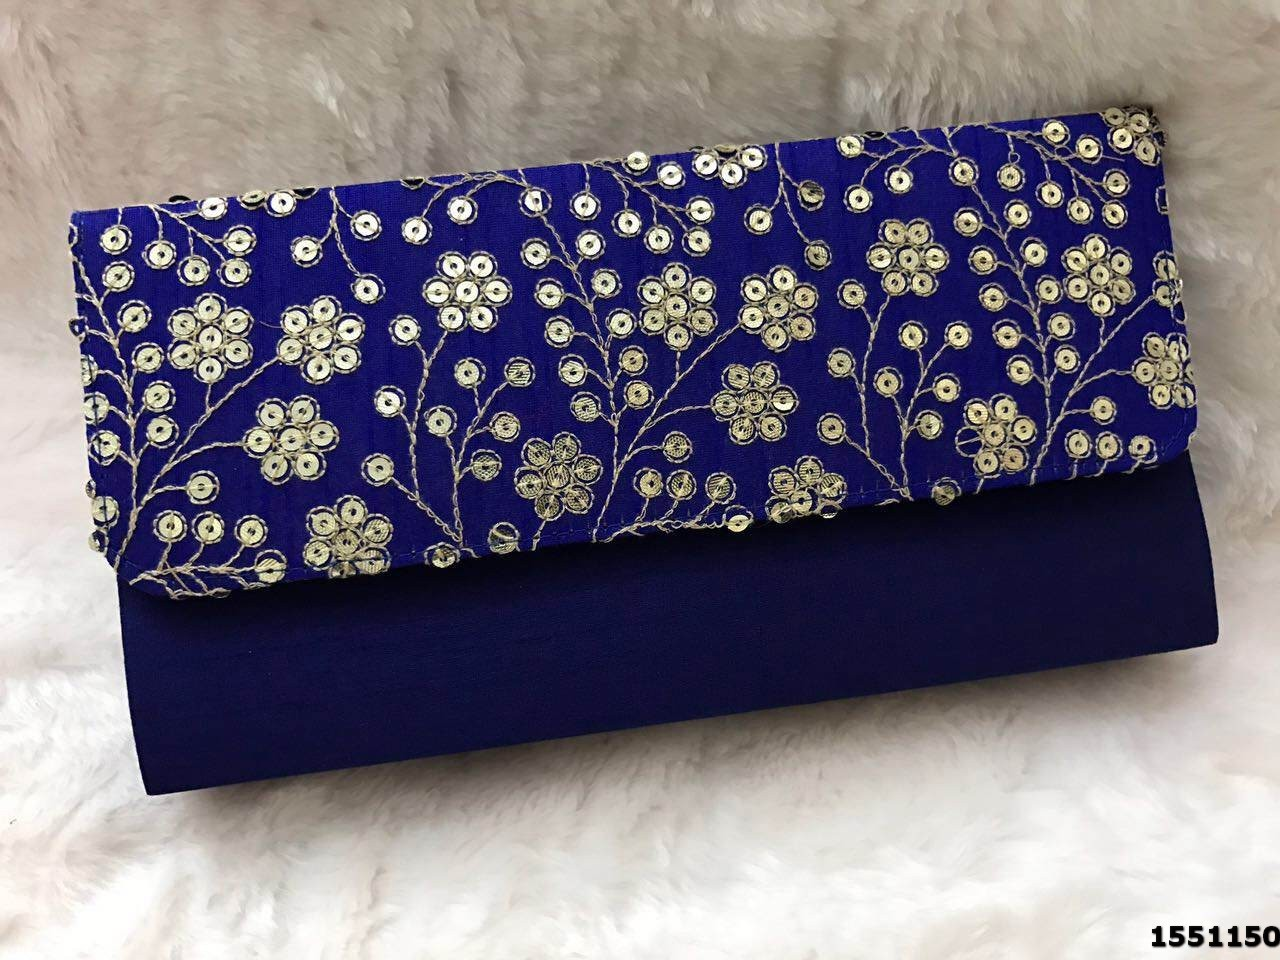 Designer Silk Evening Bag